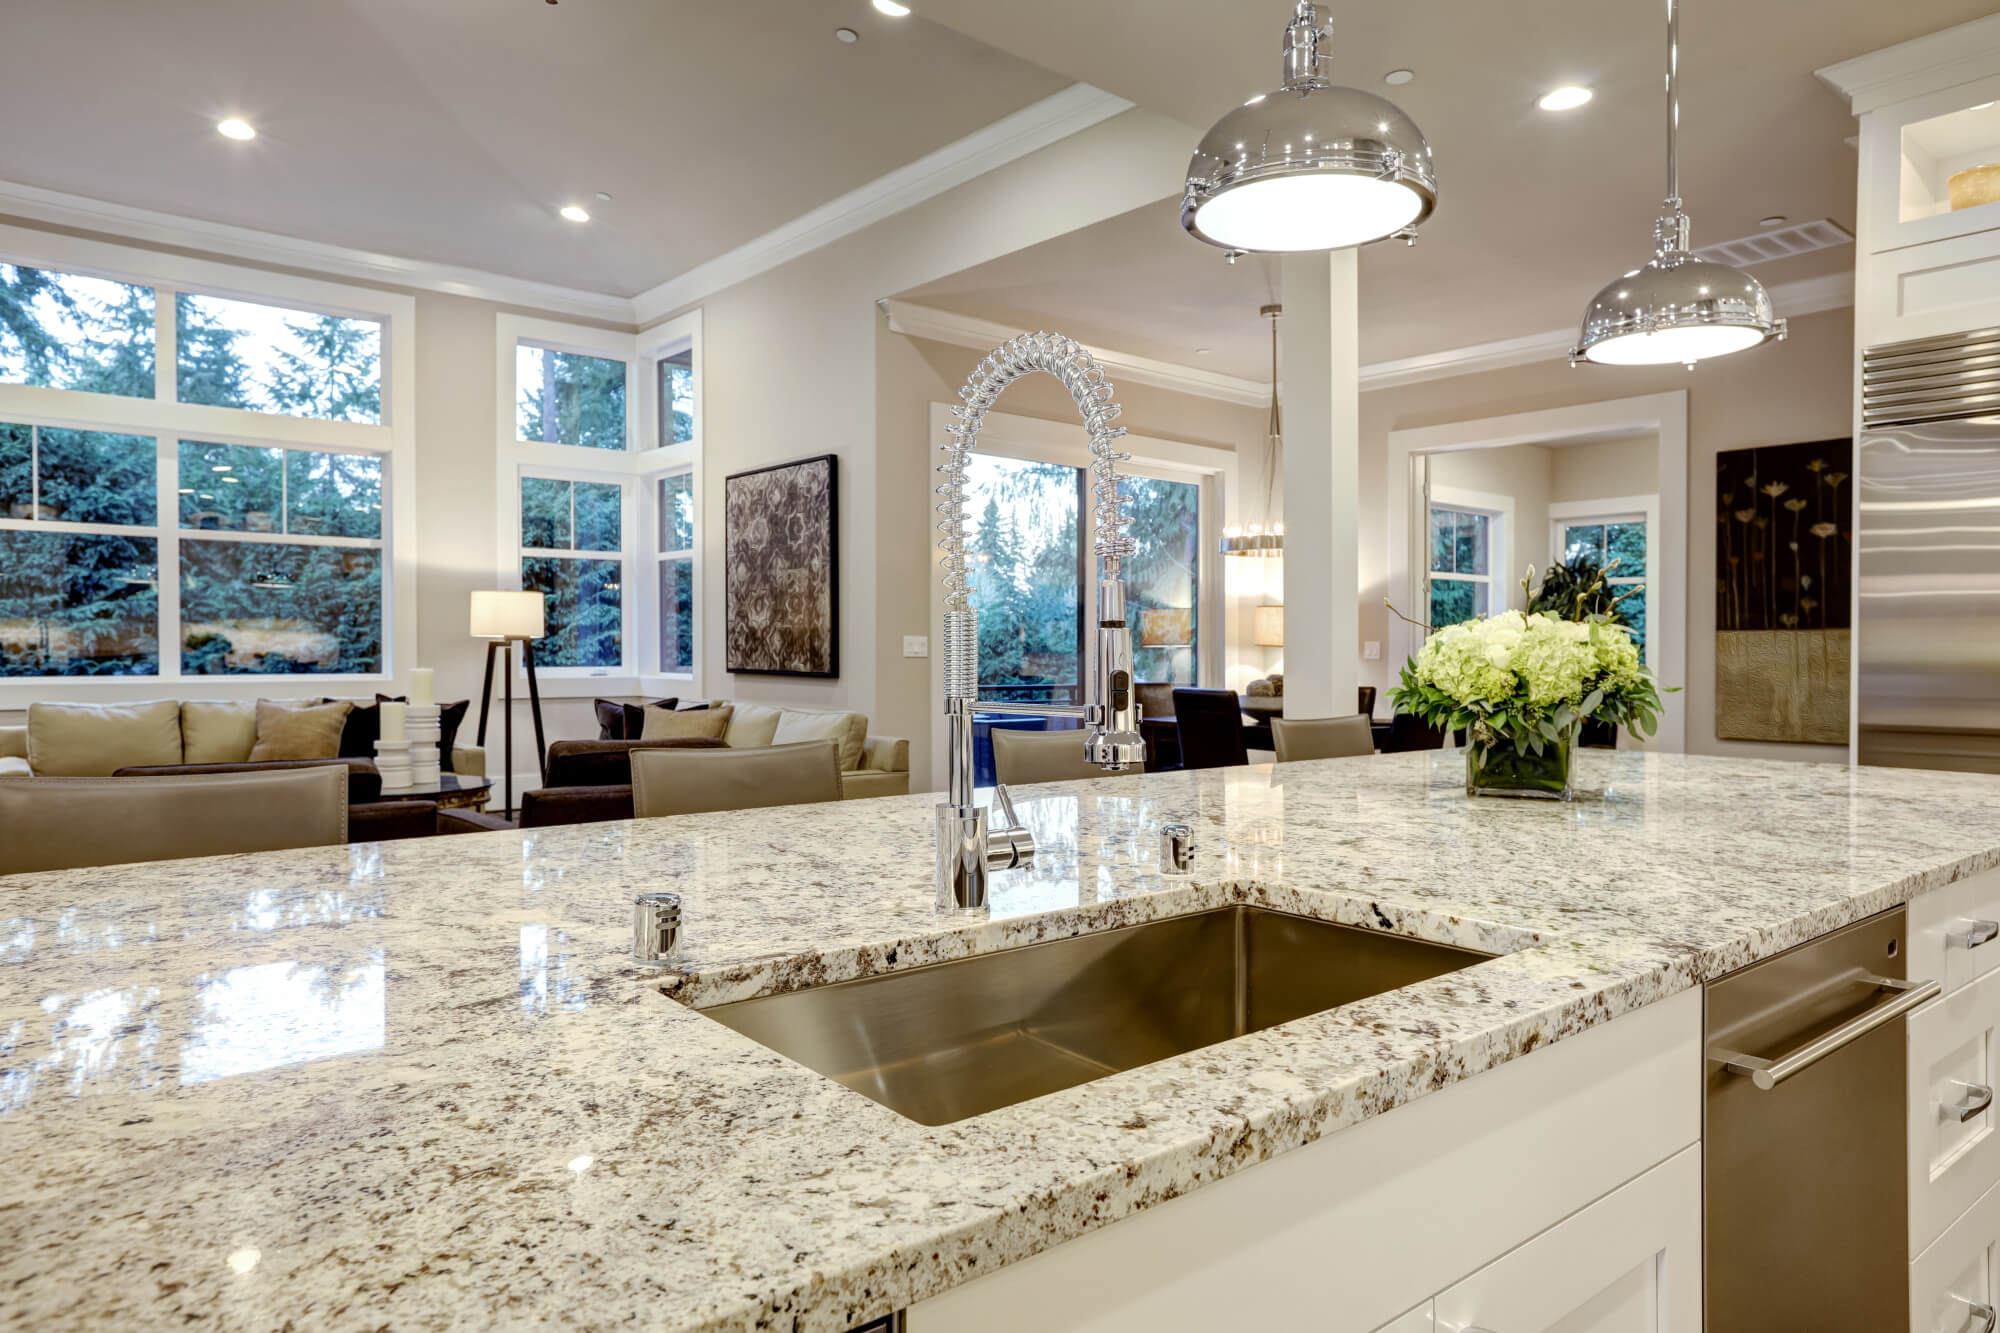 Granite Sinks Why Do You Need It In Your Kitchen And For Your Granite Countertop Interior Design Design News And Architecture Trends